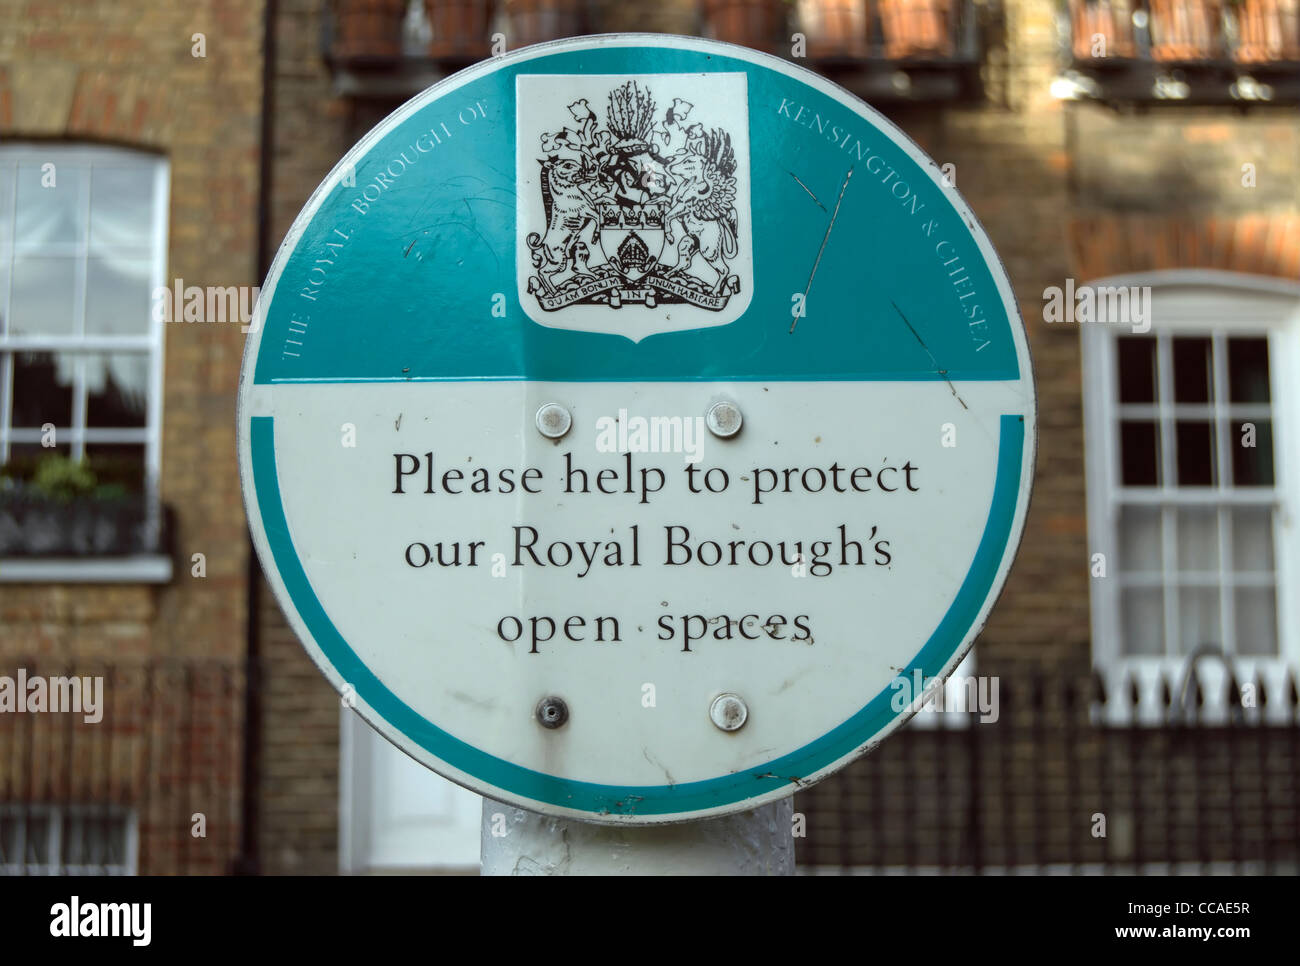 please help protect our royal boroughs open spaces signpost in chelsea, london, england - Stock Image